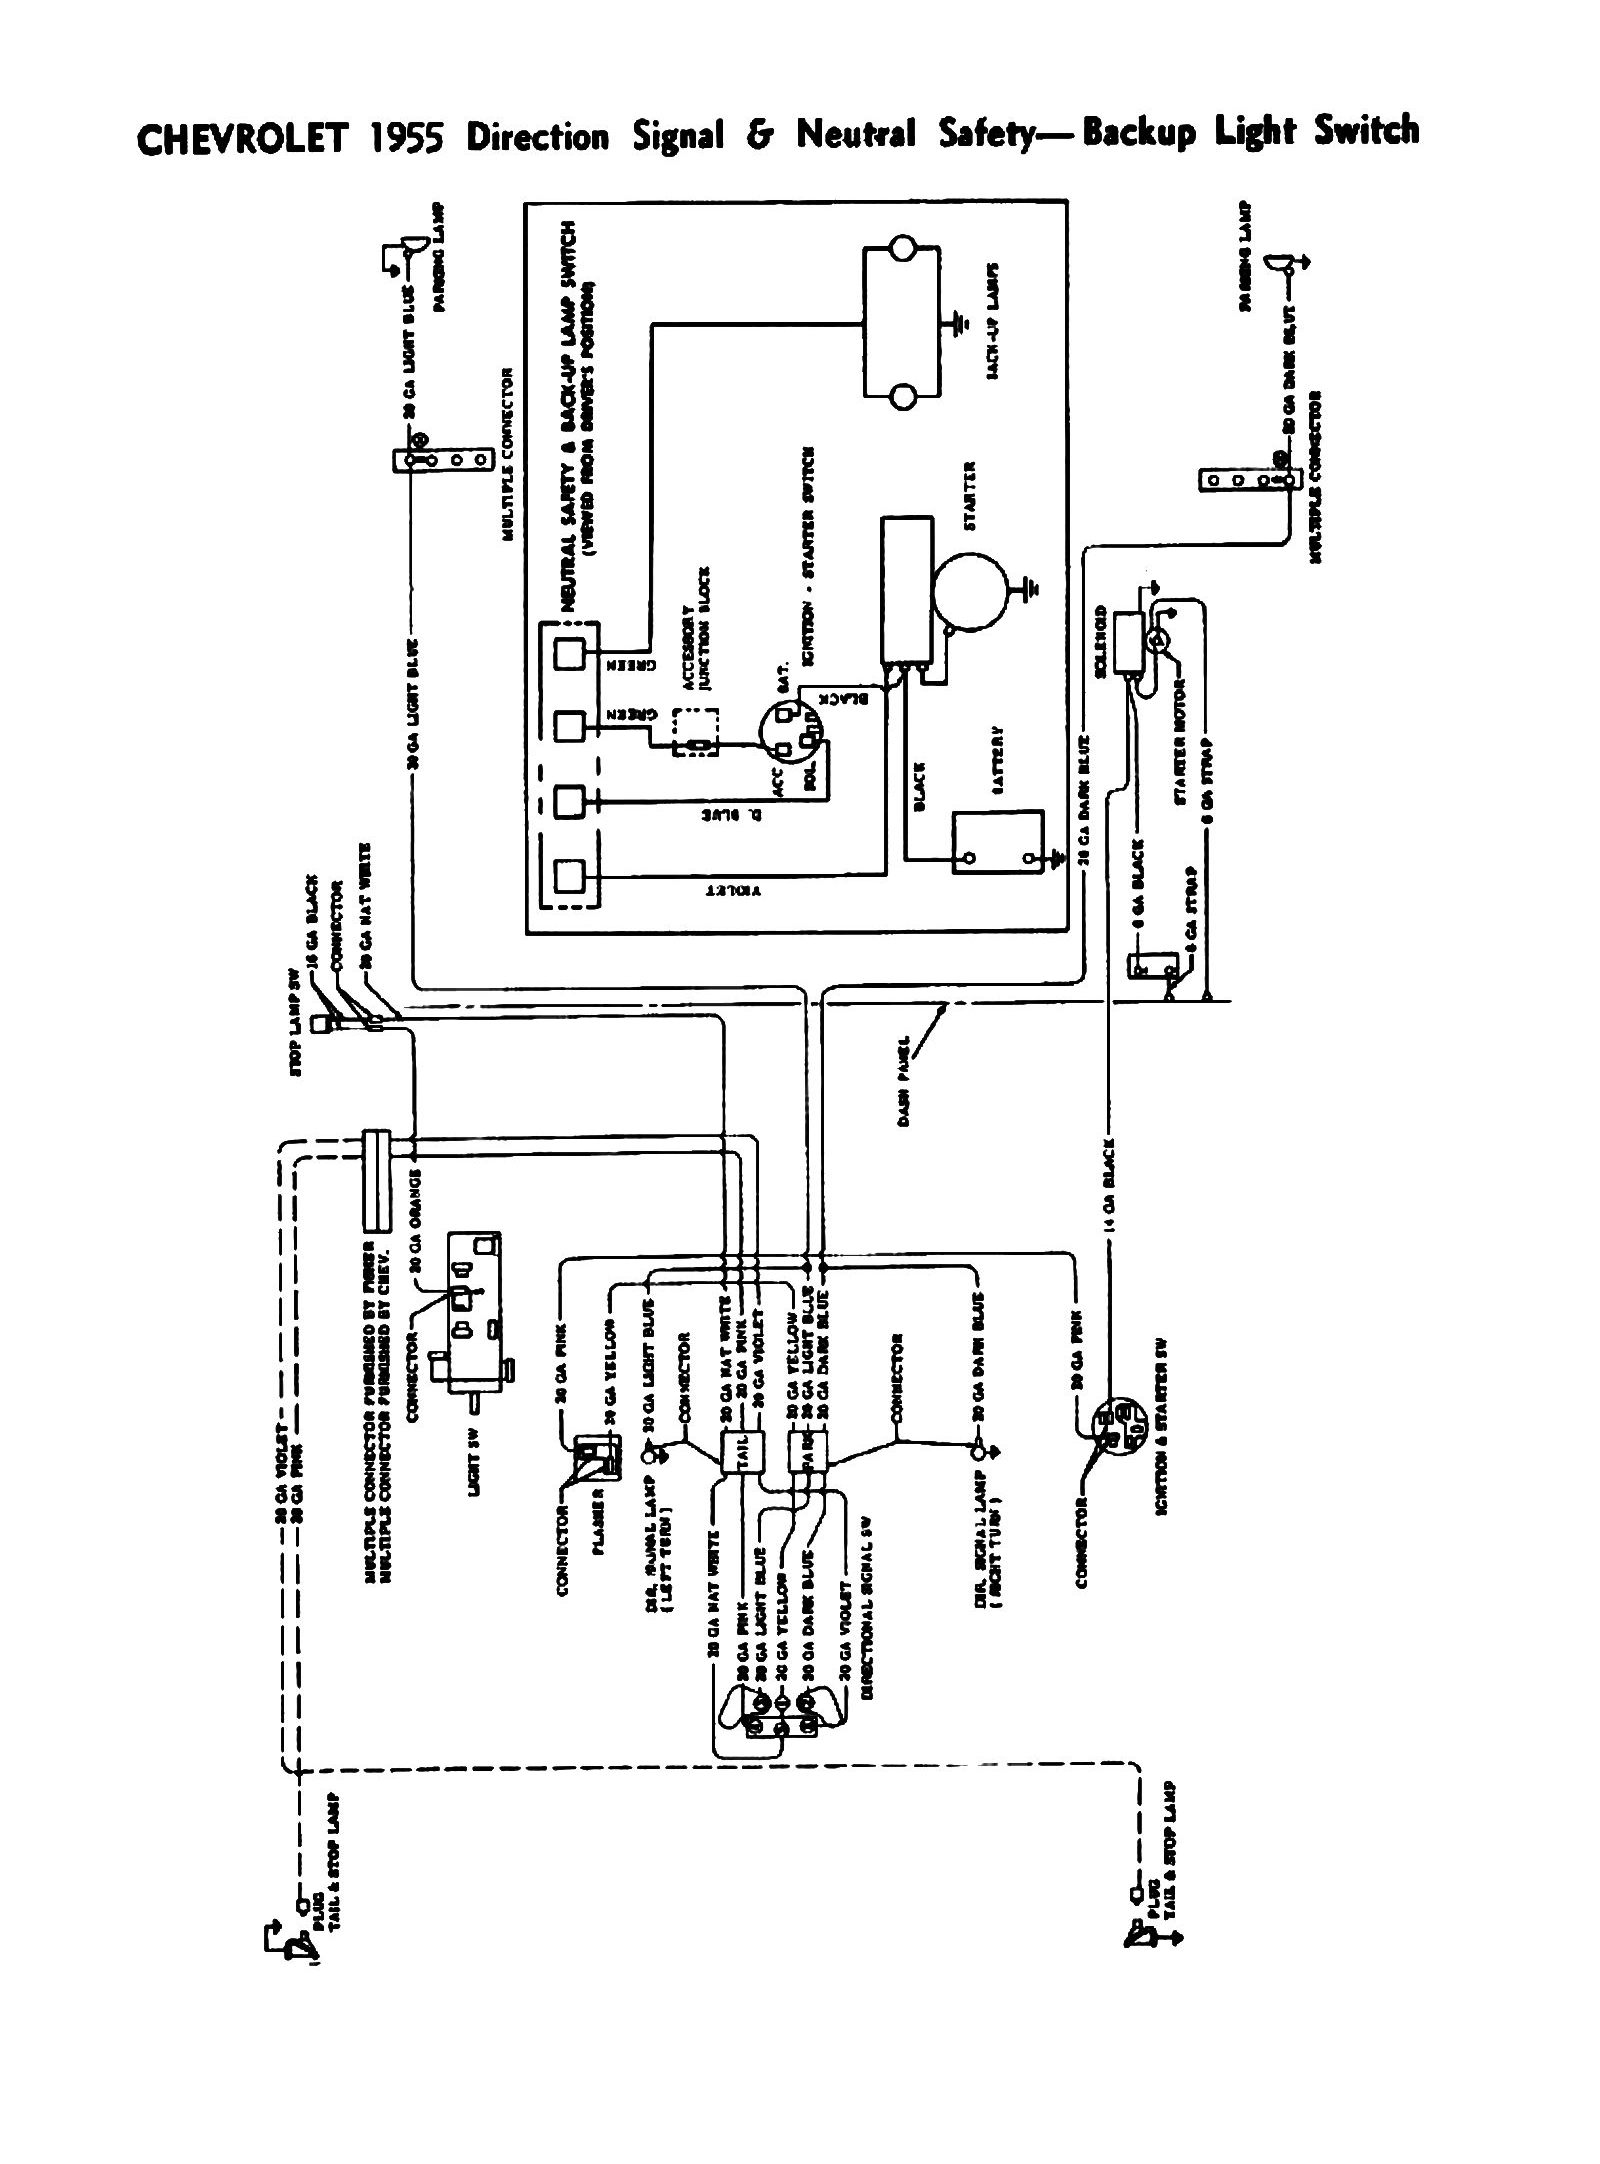 55signal chevy wiring diagrams 1984 chevy truck electrical wiring diagram at edmiracle.co